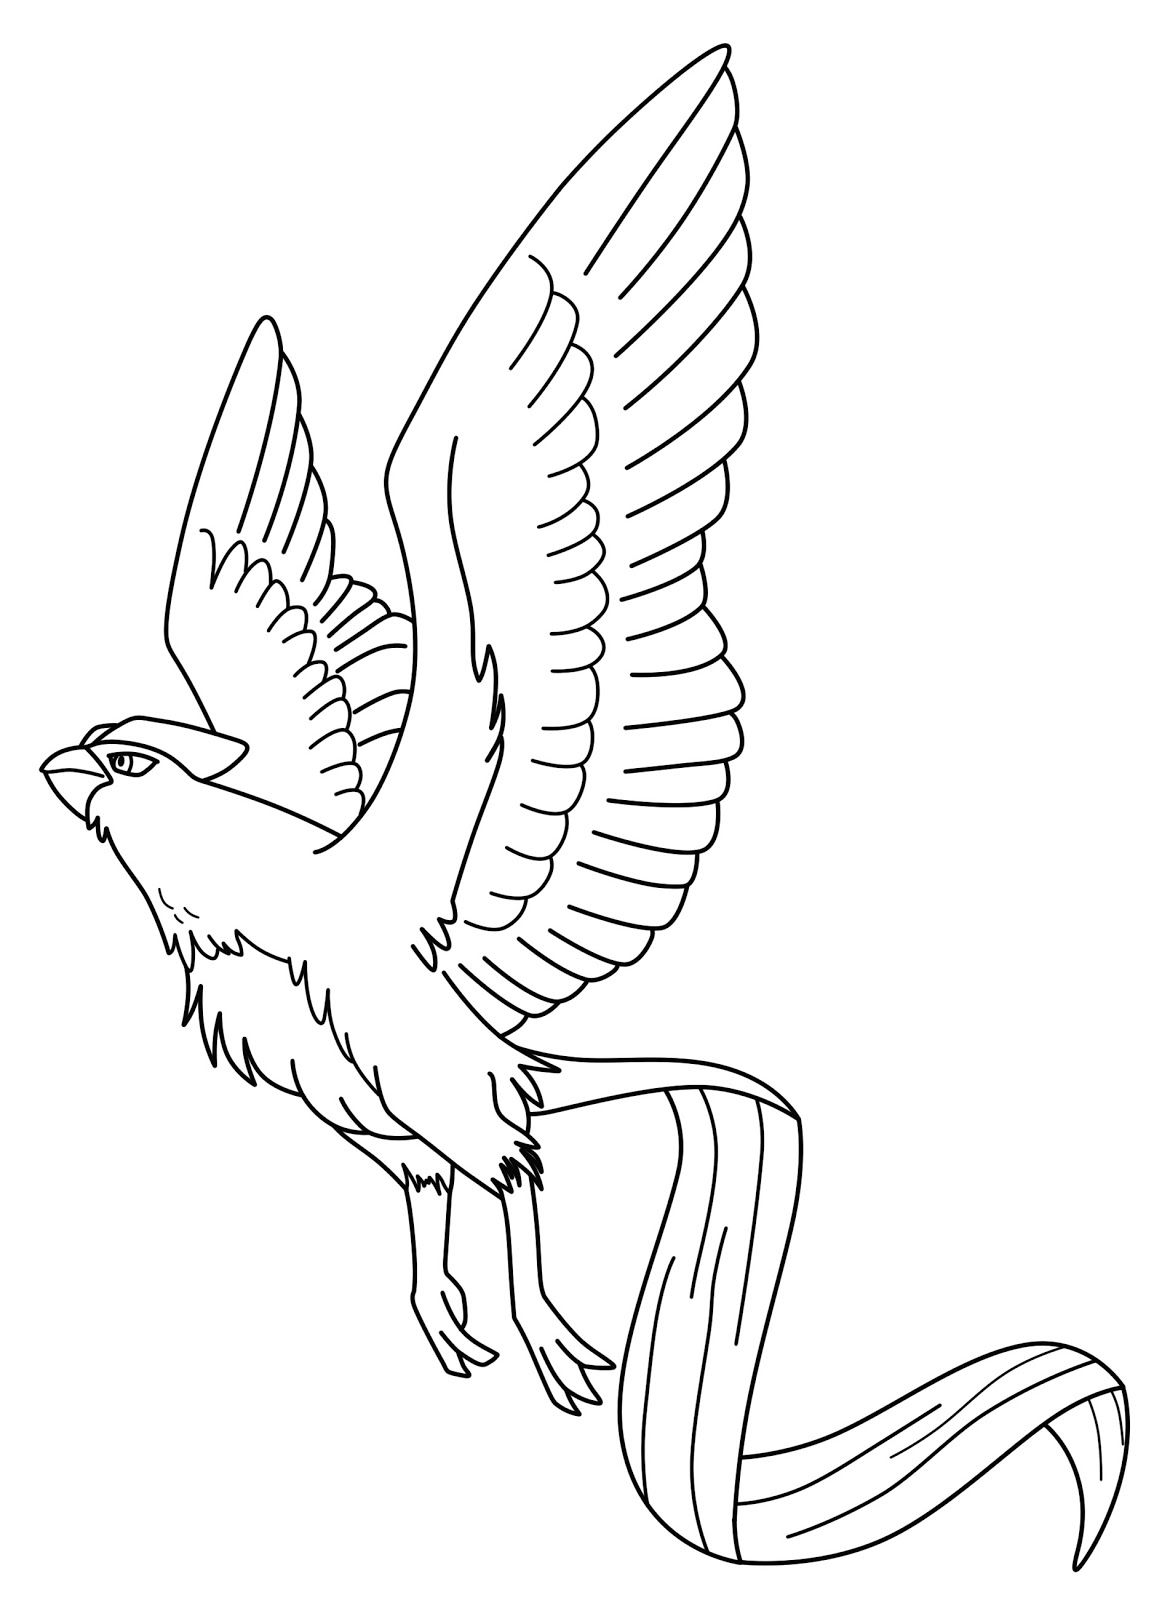 Pokemon Articuno Coloring Pages Printable Pokemon Coloring Pages Pokemon Coloring Articuno Pokemon